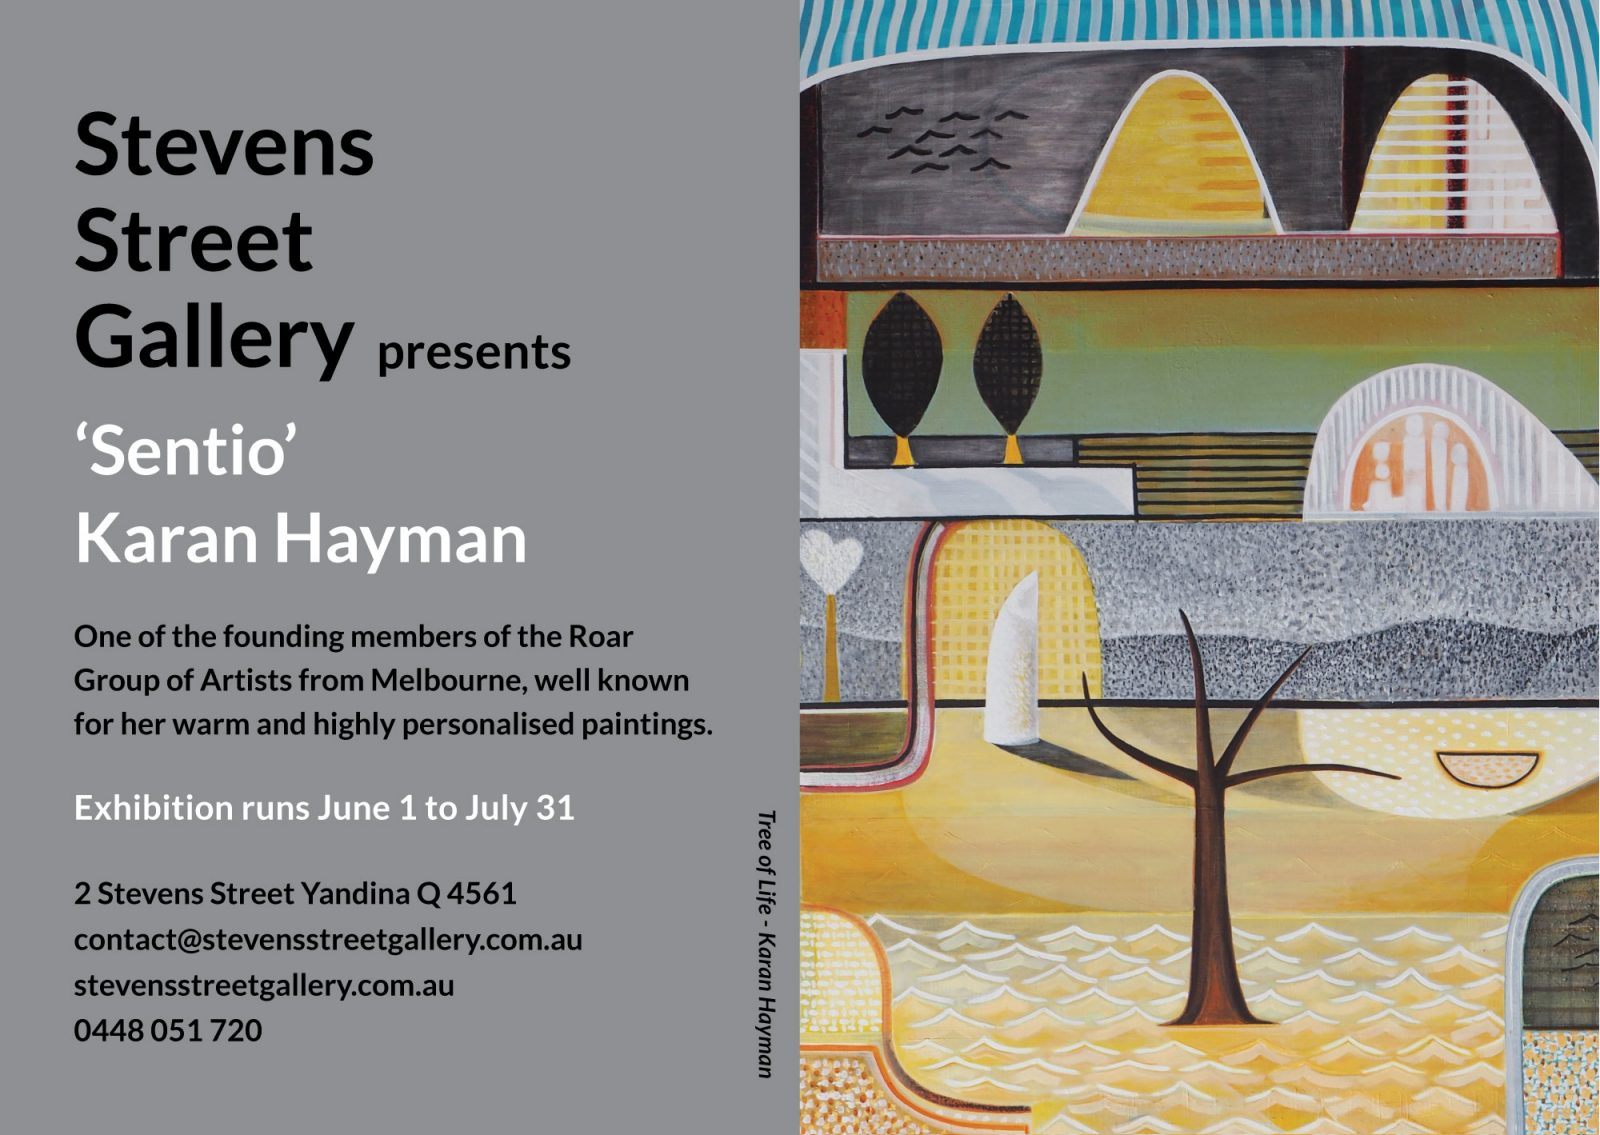 'Sentio' Karan Hayman exhibition invite.